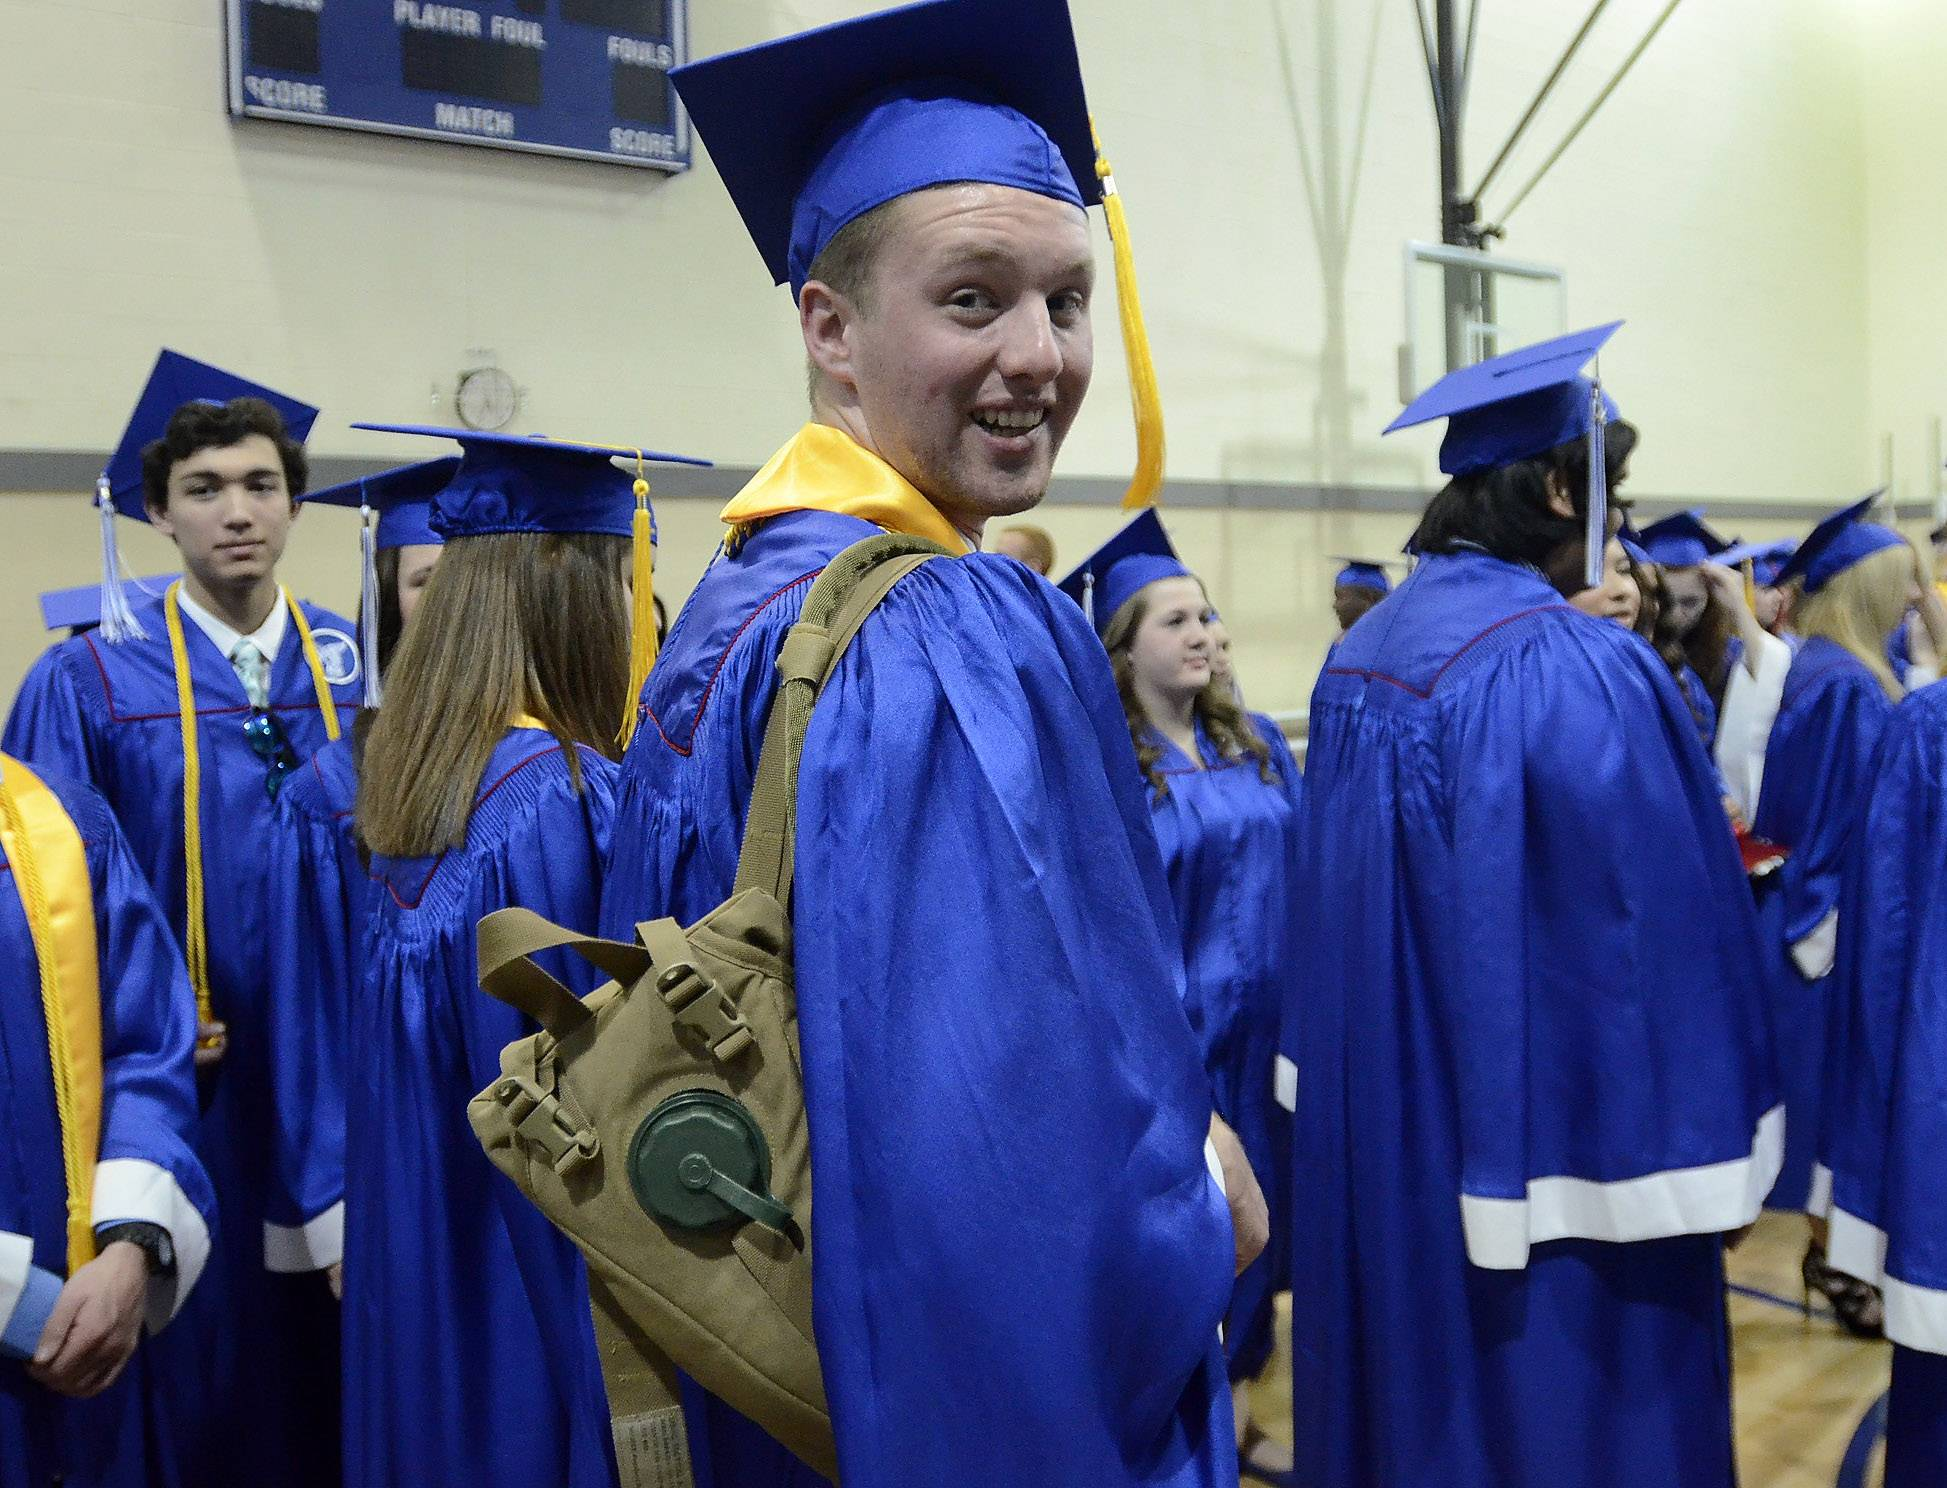 Ben Nagelhout came prepared with his own supply of water at the Lakes Community High School graduation.